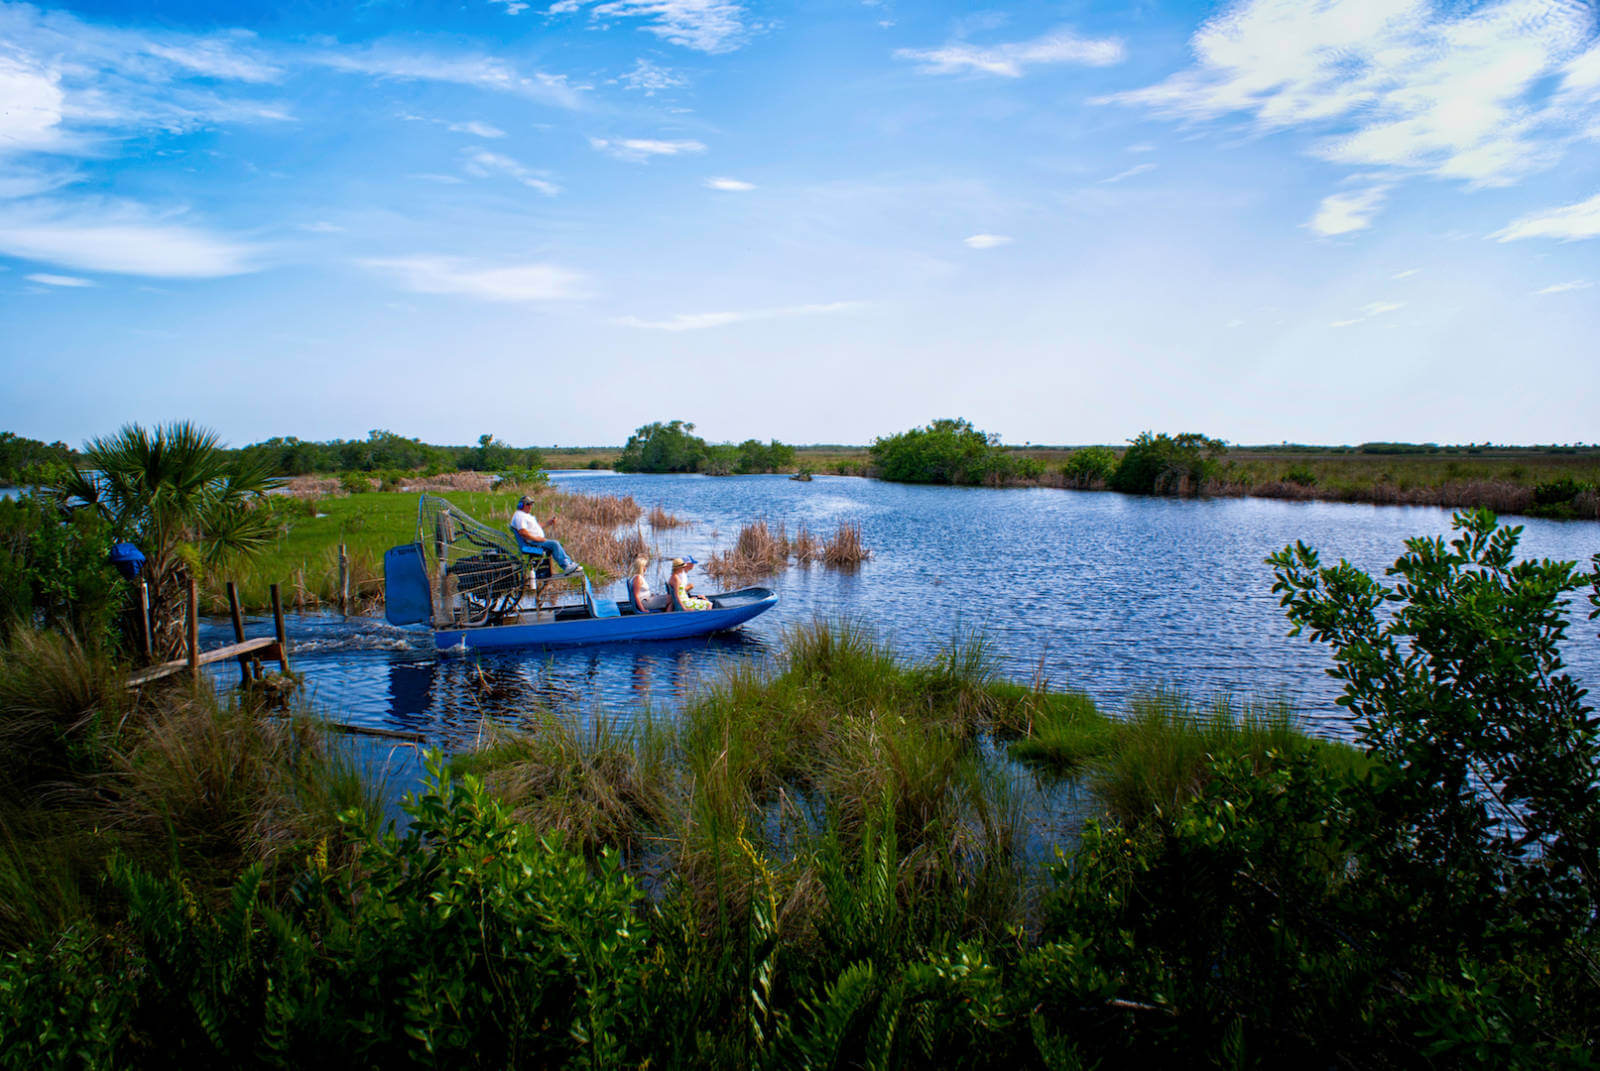 Take a trilling airboat ride in the Florida Everglades to see alligators, birds, and other Florida wildlife. Photo by Jennifer Brinkman | MustDo.com